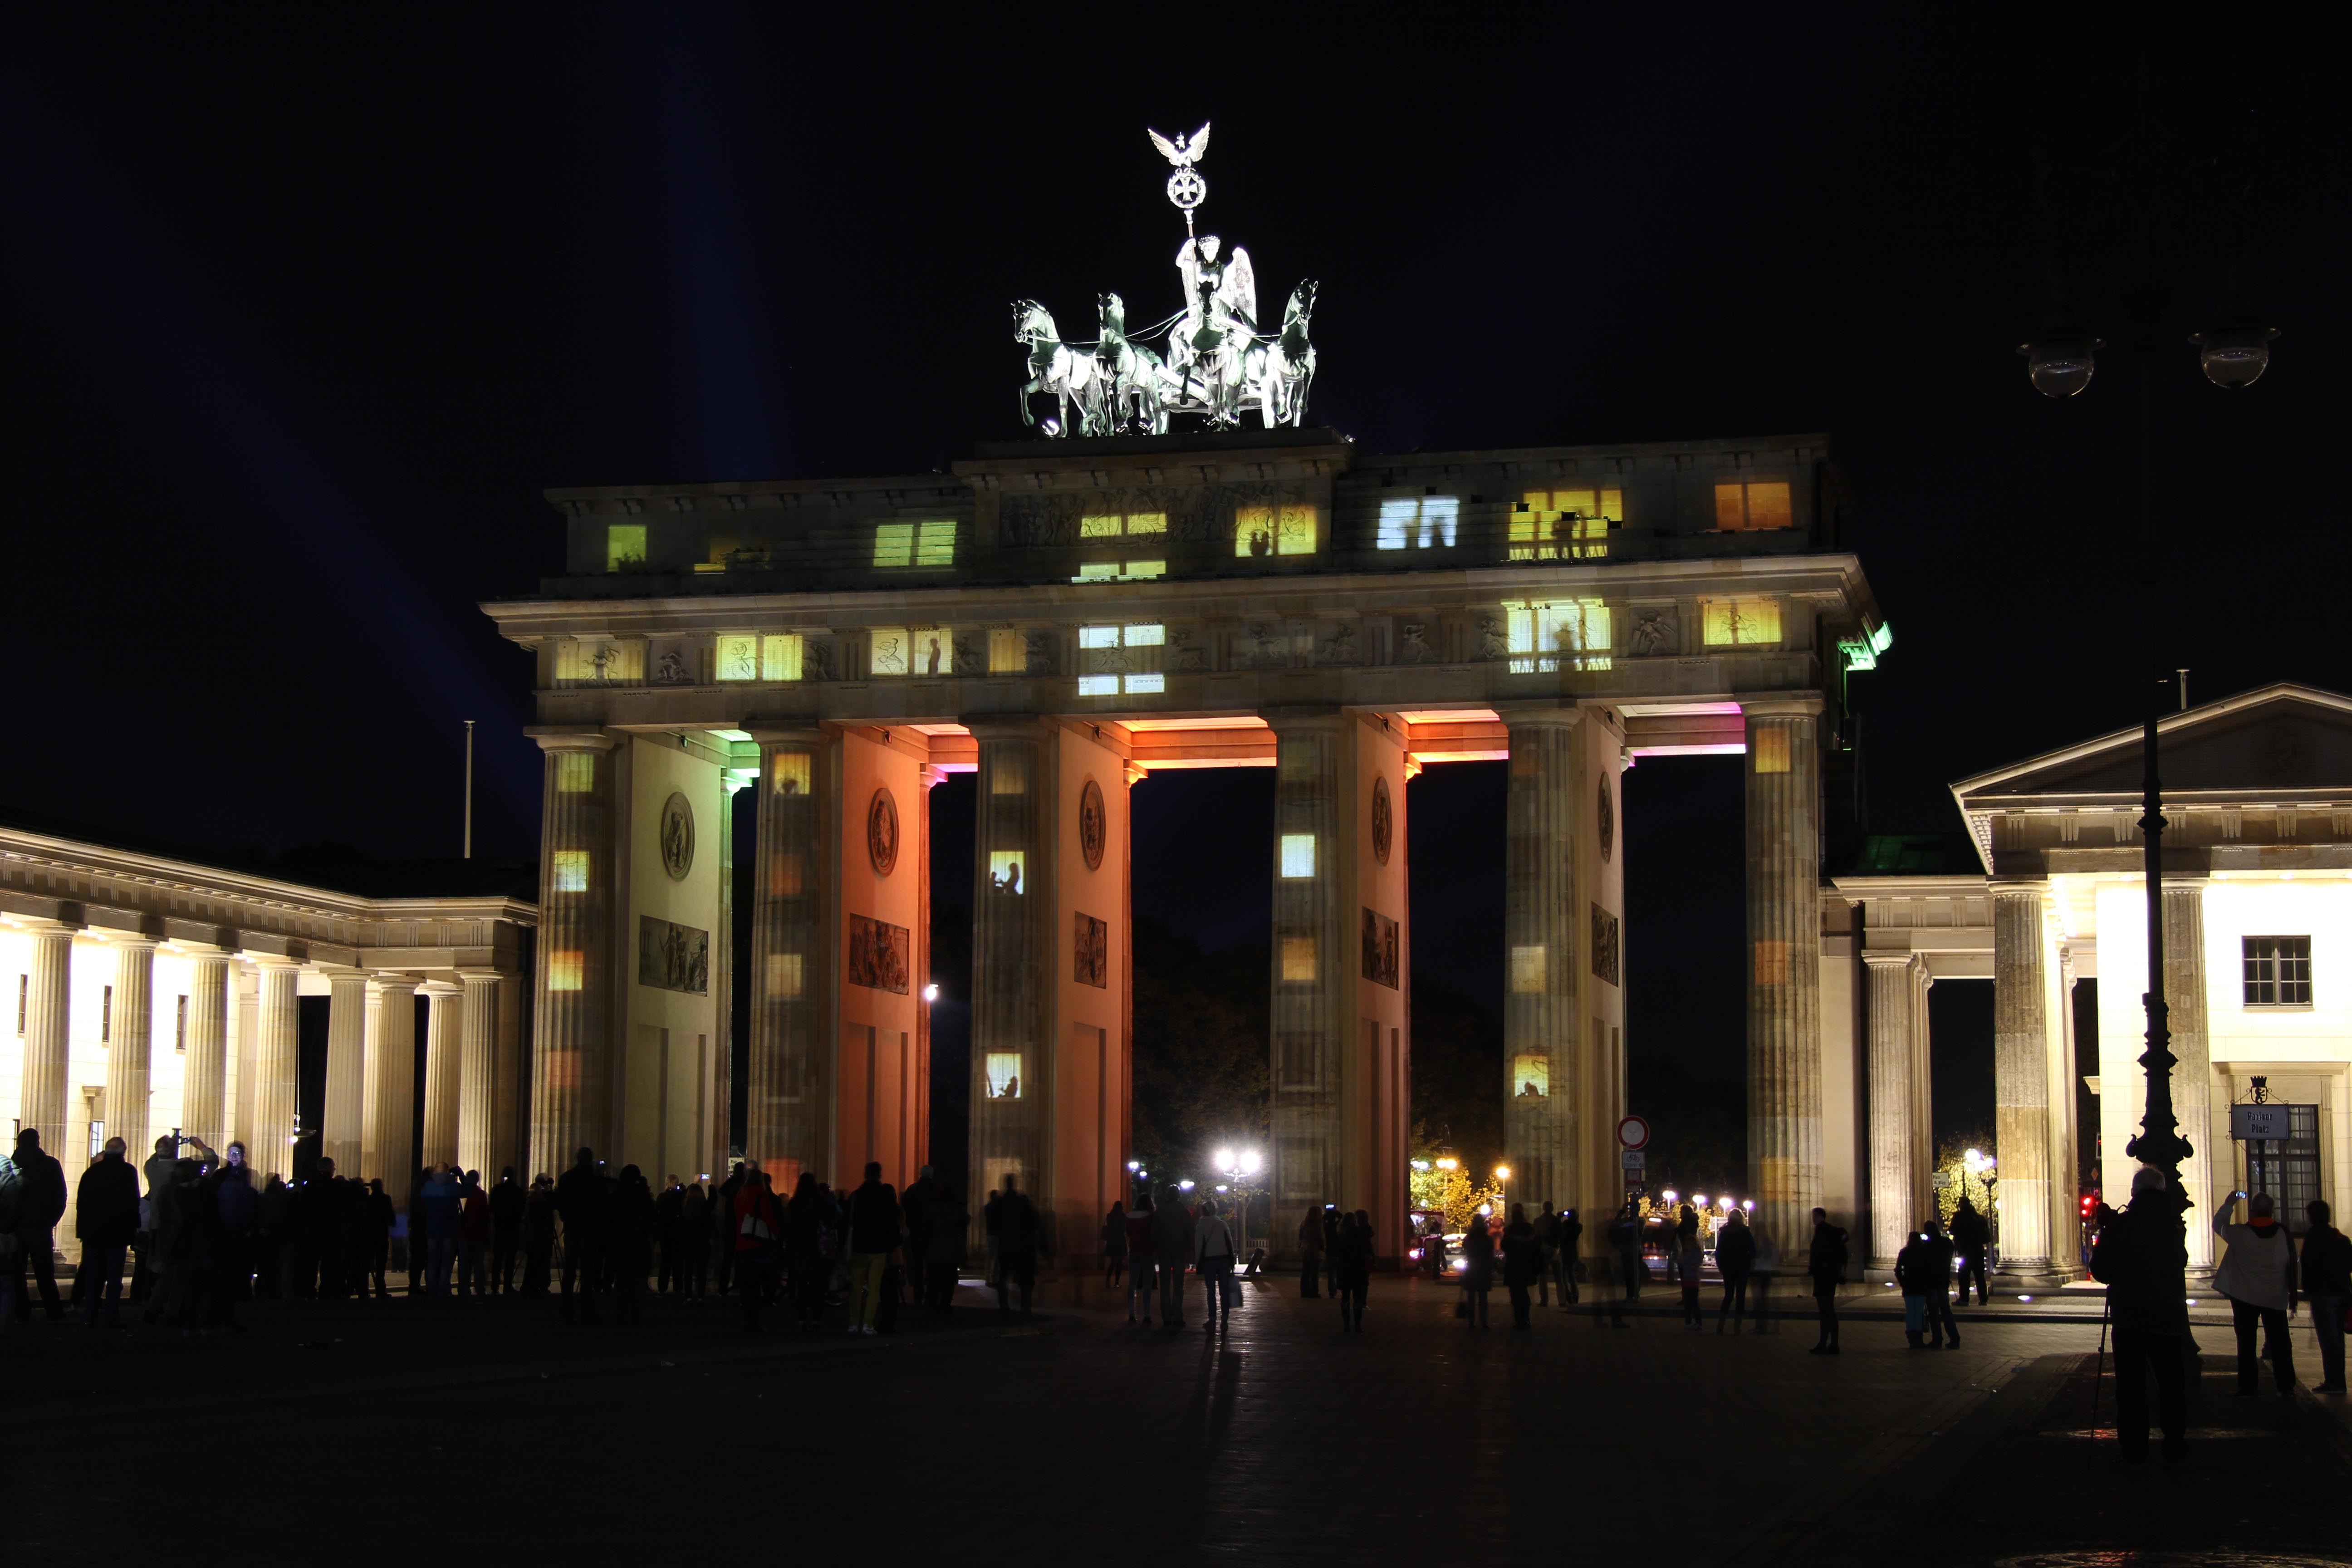 Brandenburger Tor (The Brandenburg Gate) made to look like apartments during the Festival of Lights in Berlin